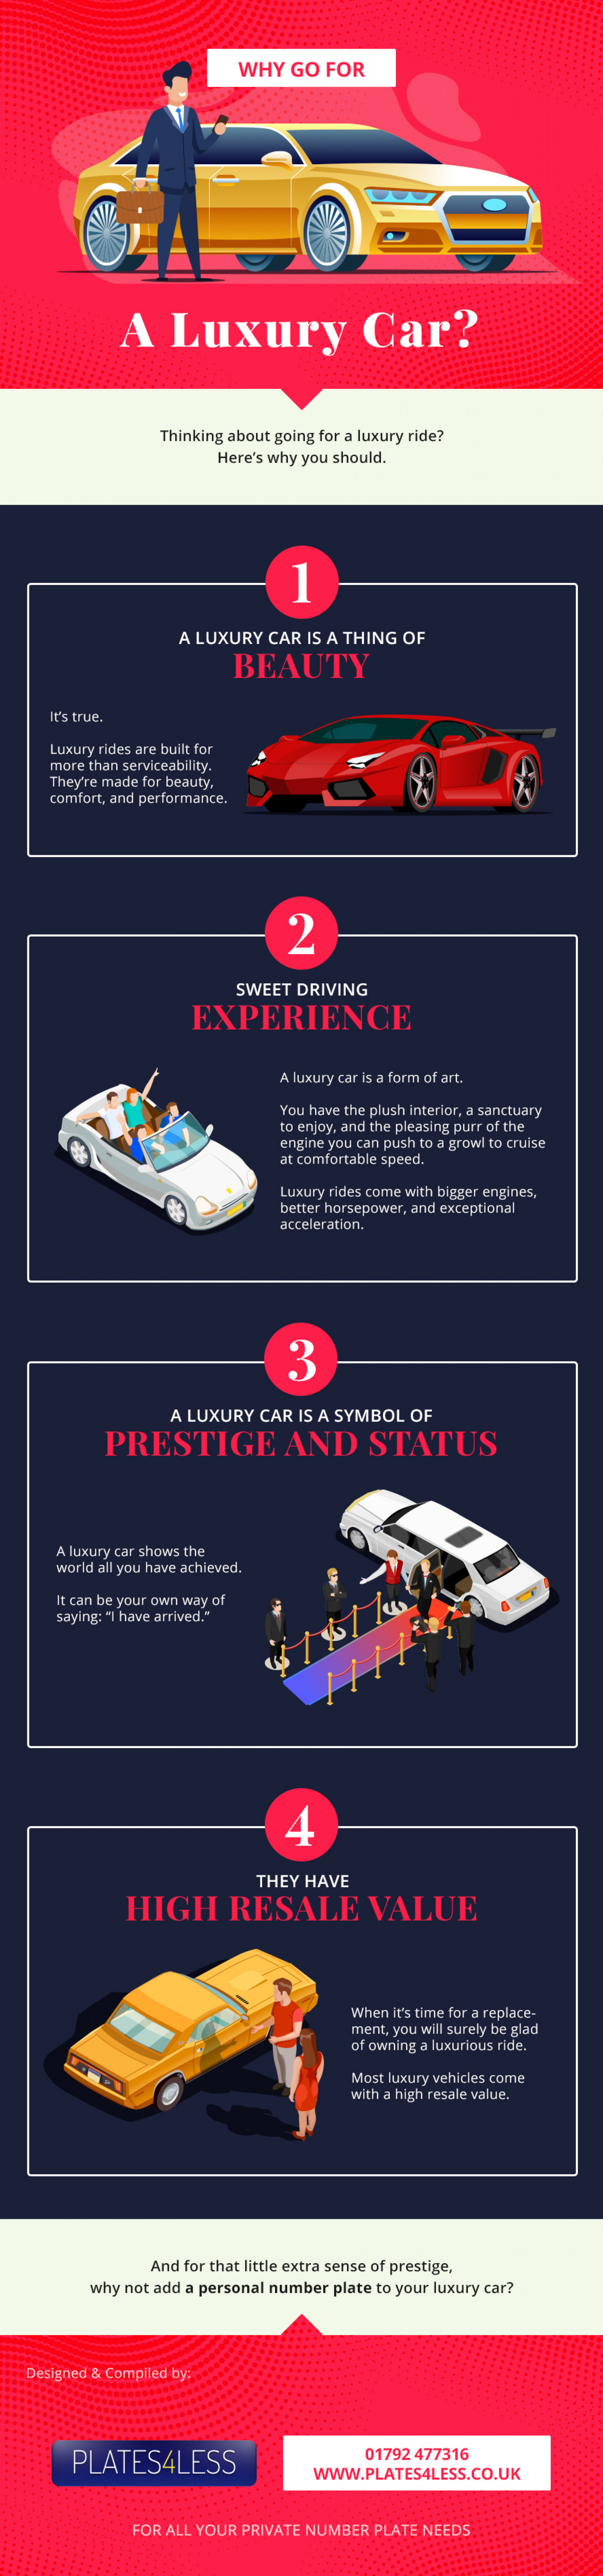 Why Go For A Luxury Car Infographic